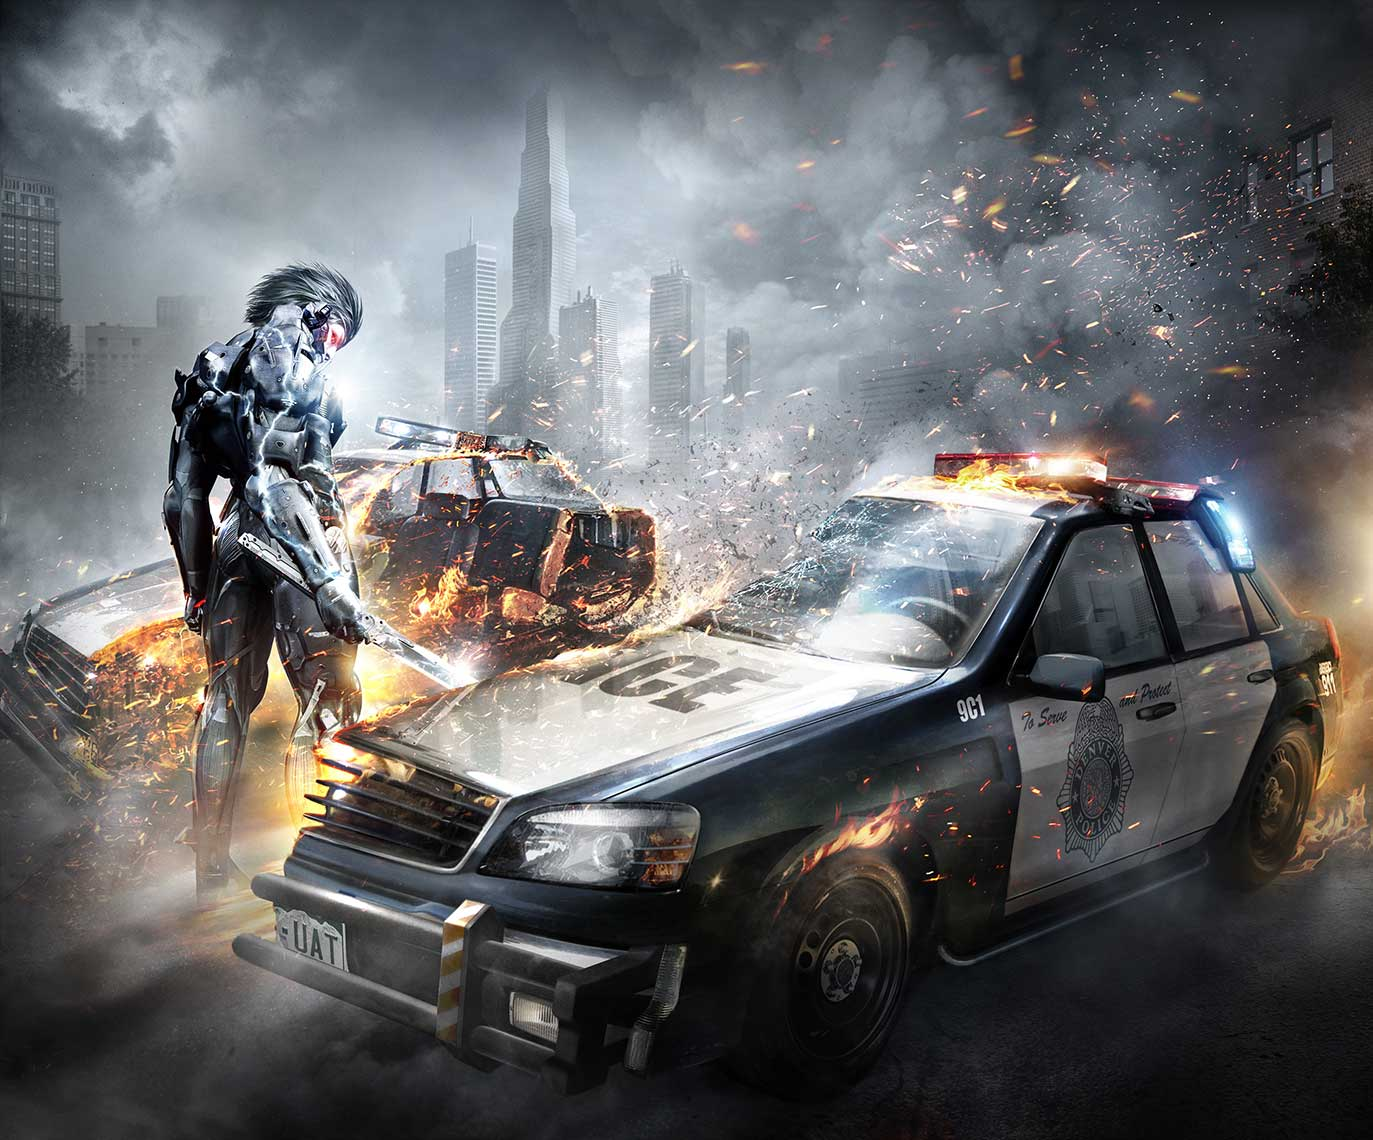 game-imagery-Metal Gear-sawing-police-car-in-half-destroyed-apocalyptic-background